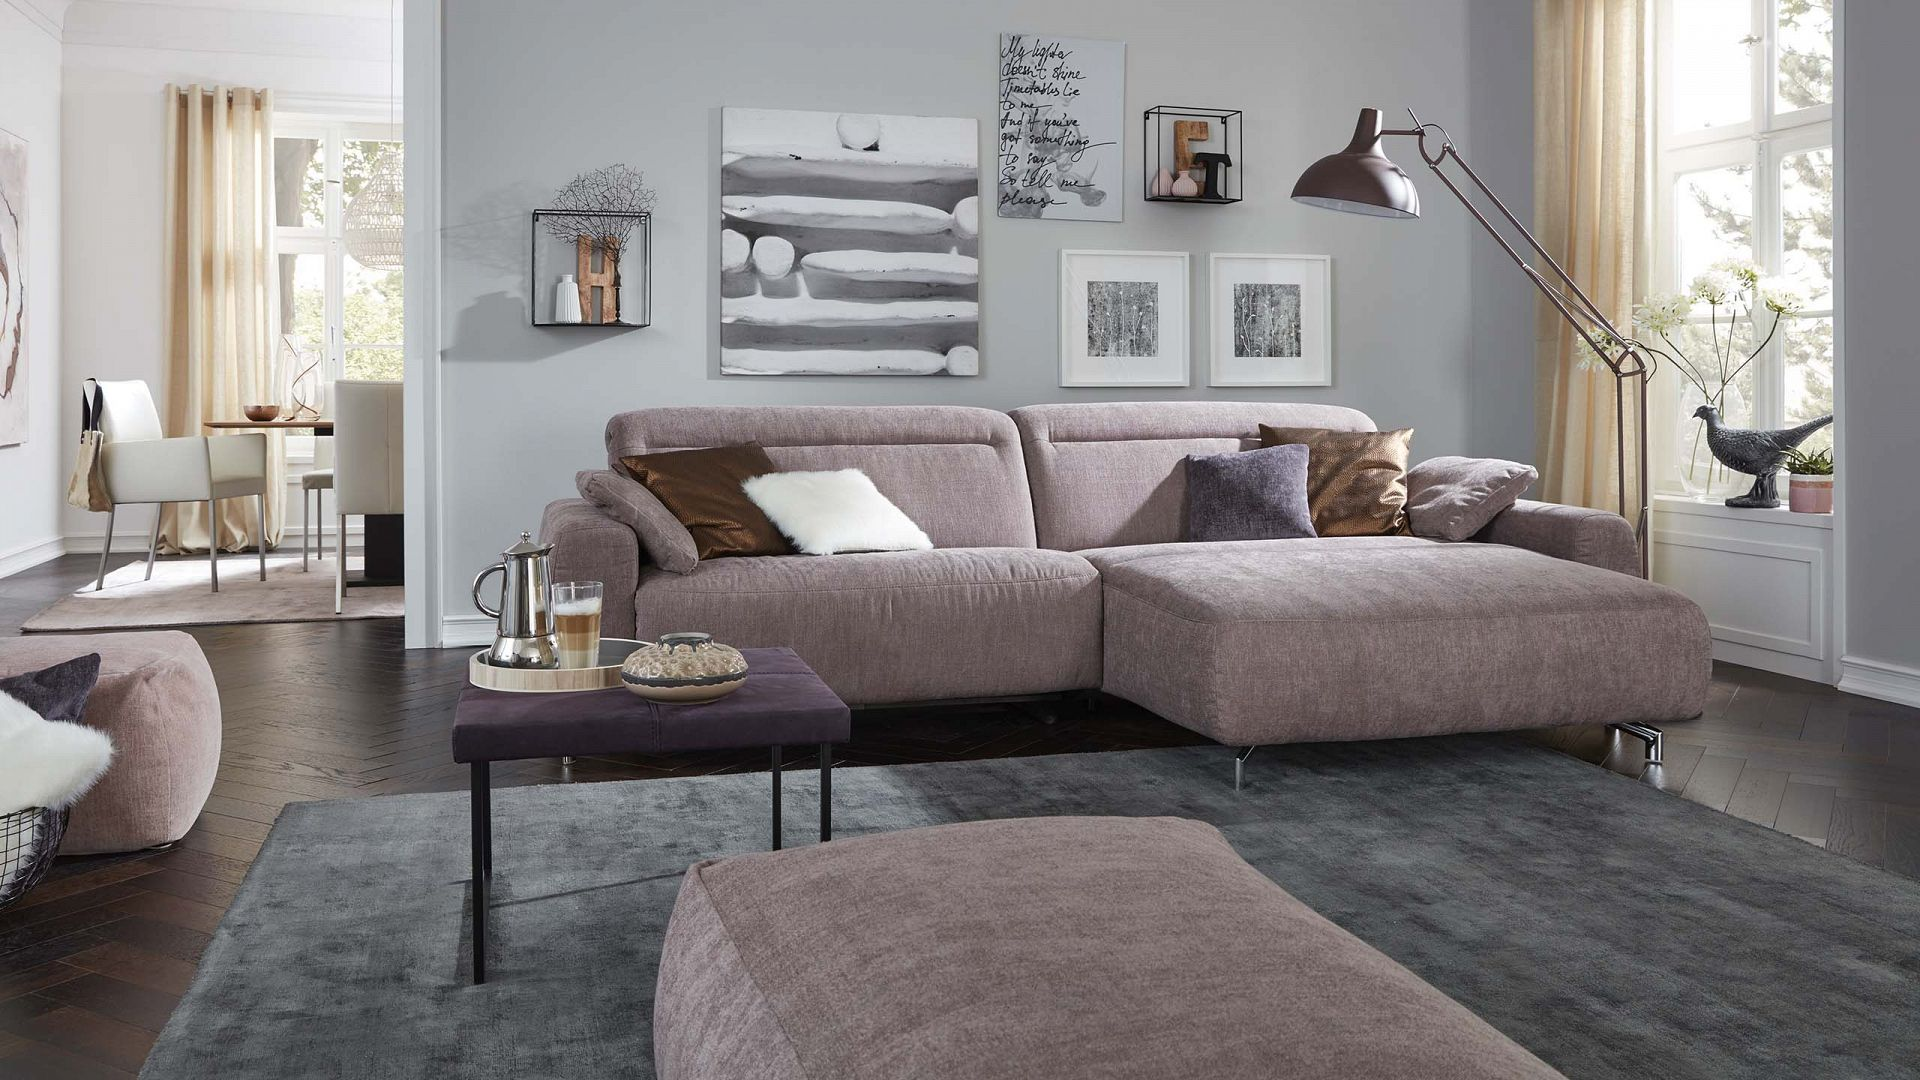 Interliving Sofa Serie 4151 Image